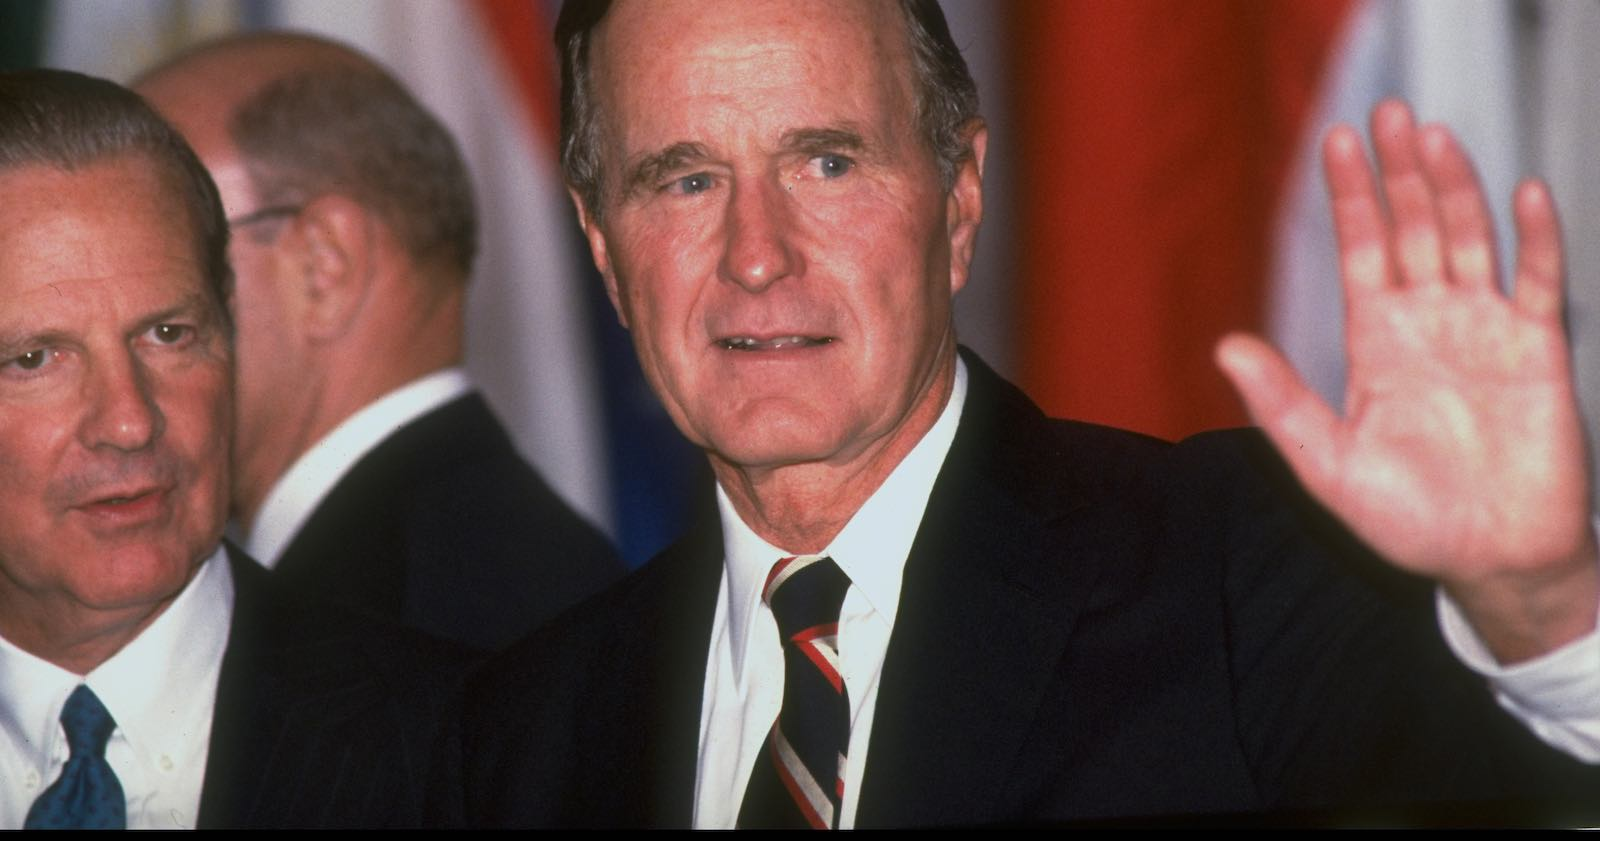 George H. W. Bush, 1989 (Photo: Diana Walker via Getty)